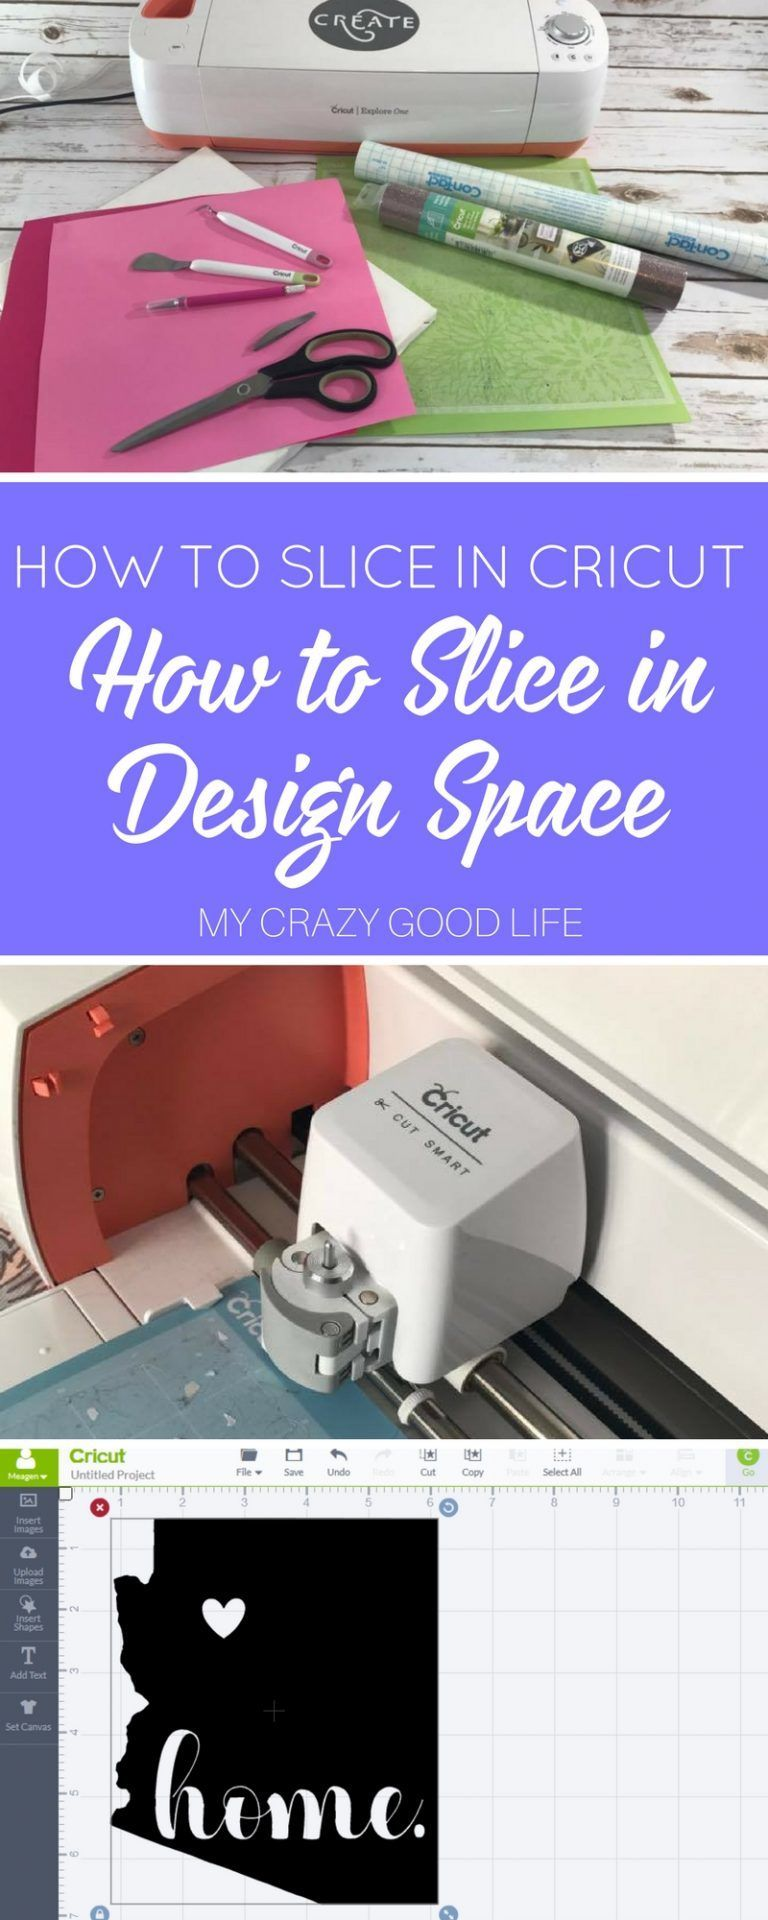 How To Slice In Cricut How To Slice In Design Space Cricutcrafts If You Are New Or If You Just Aren T Sure Scrapbooking Ideen Cameo Plotter Schneideplotter